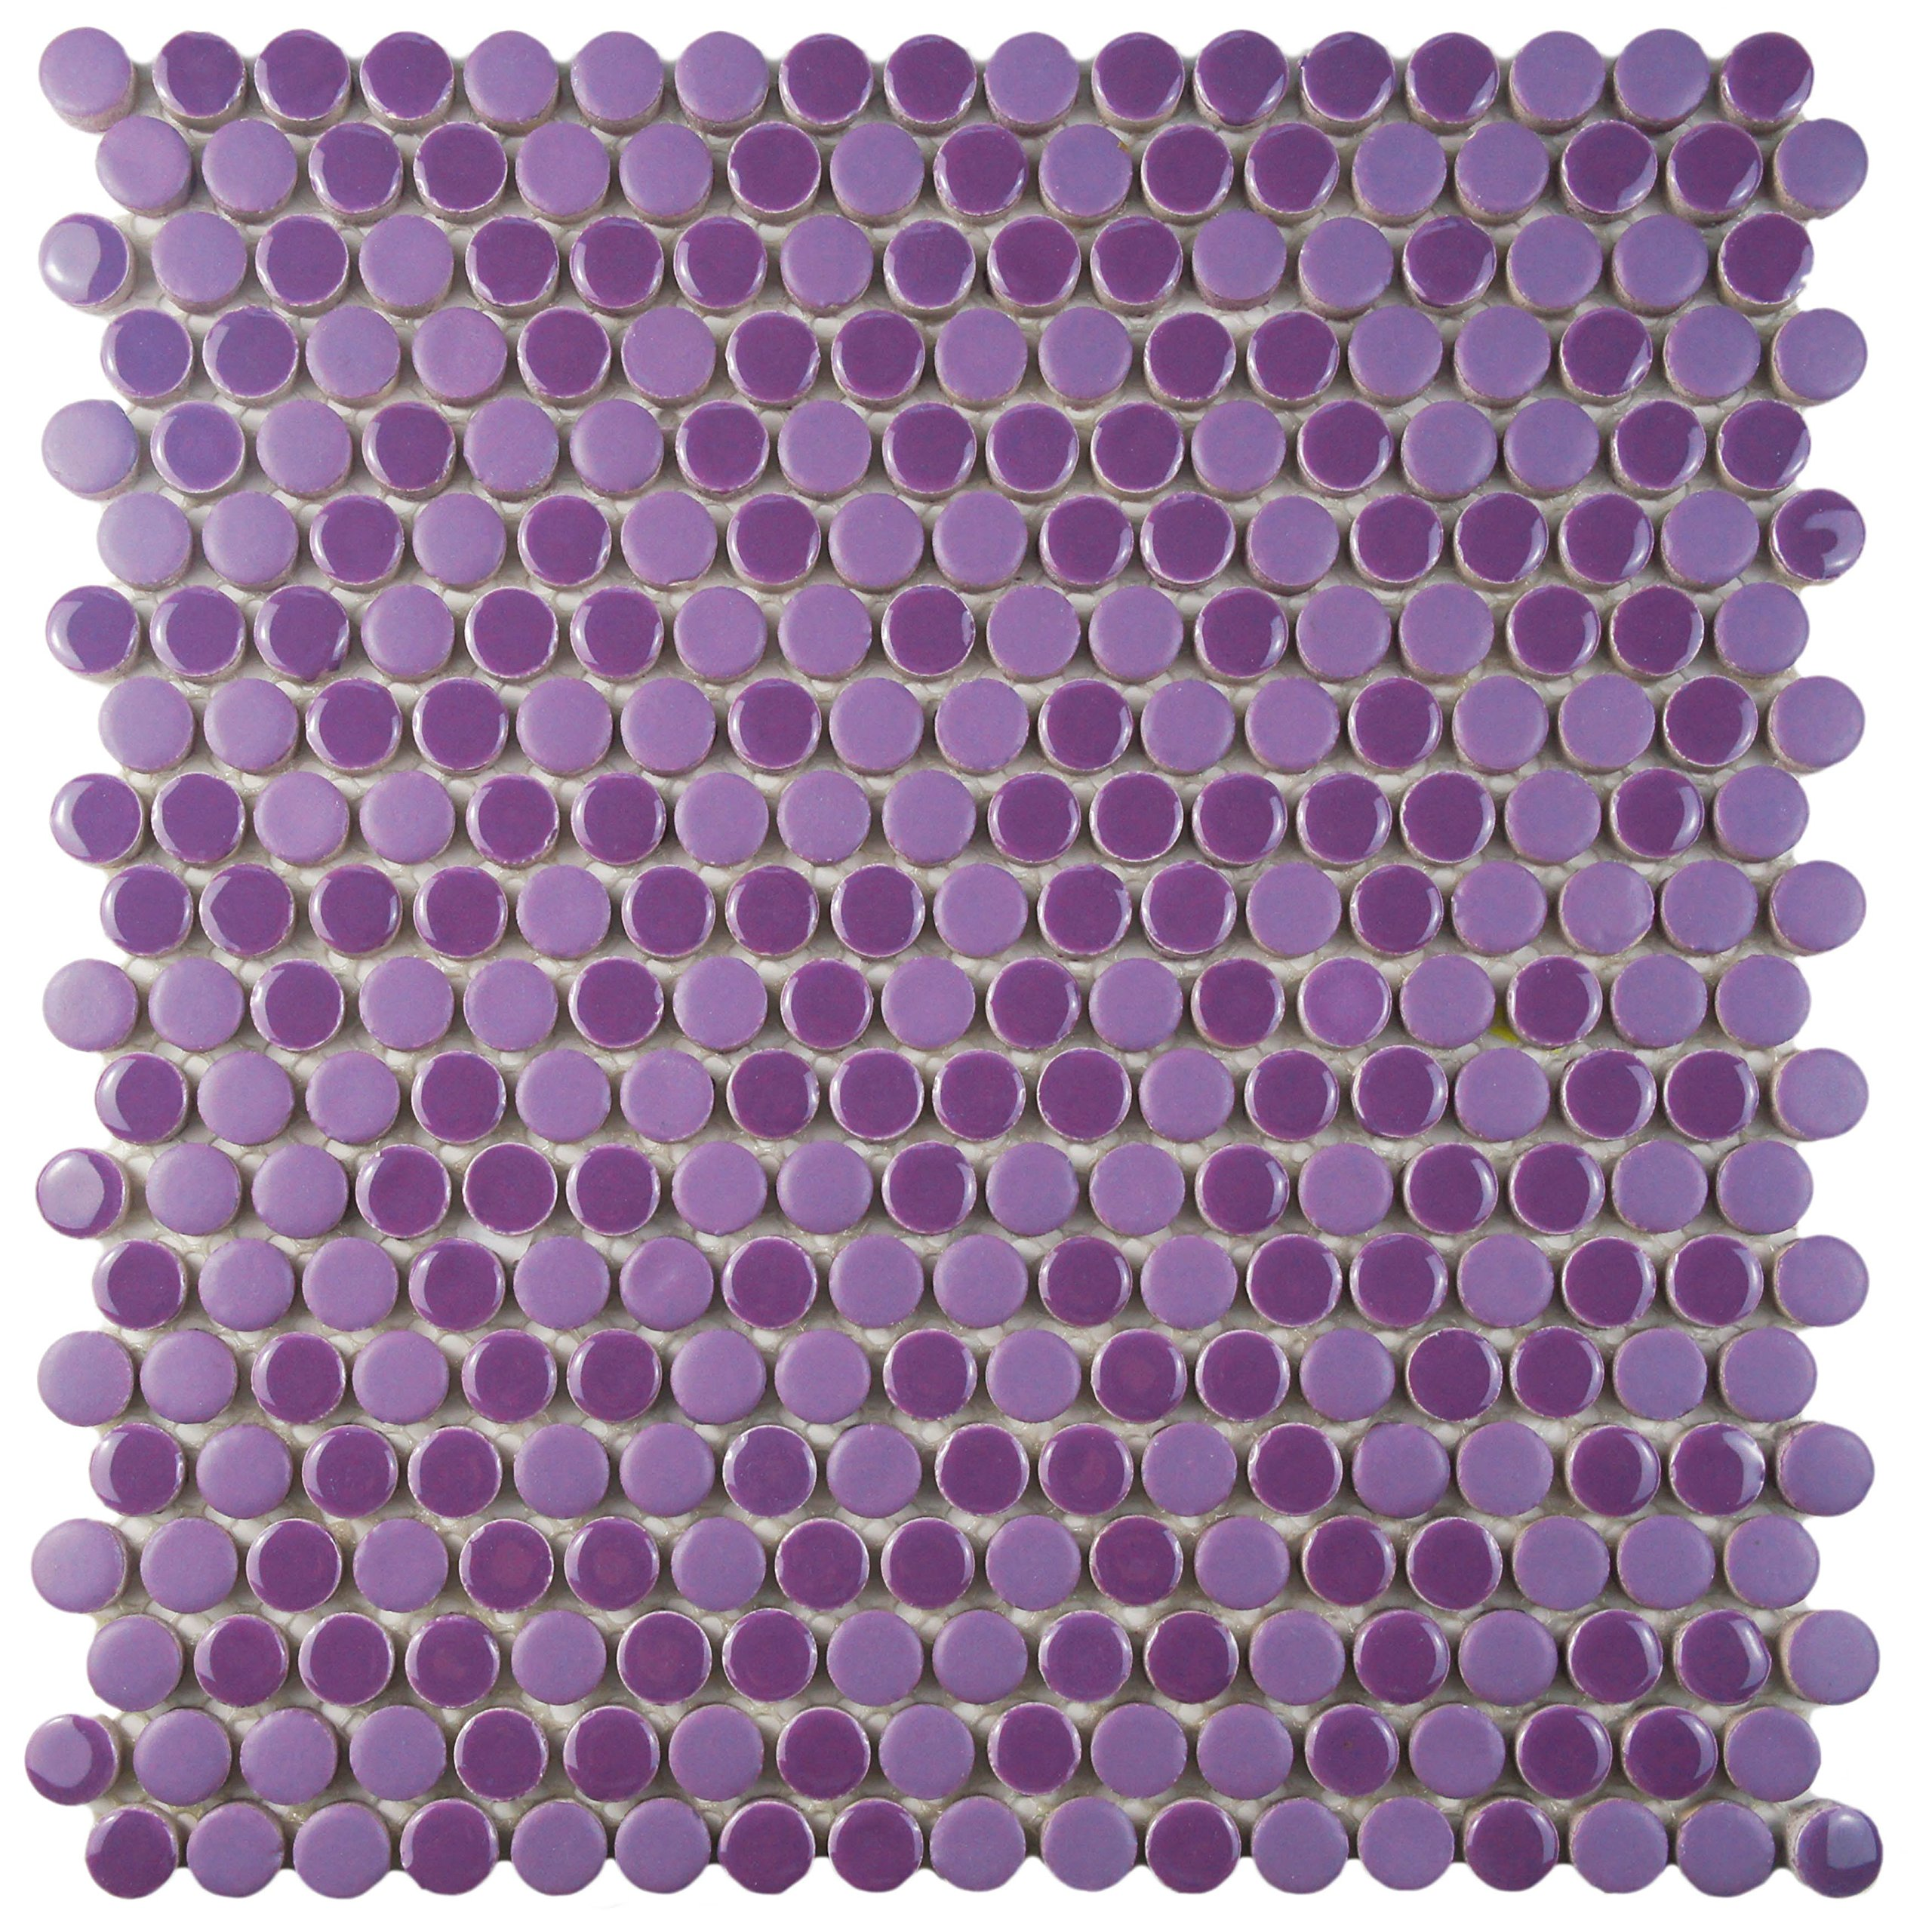 SomerTile FSHCOMPL Juno Penny Round Porcelain Floor and Wall Tile, 11.25'' x 11.75'', Purple/Lavender by SOMERTILE